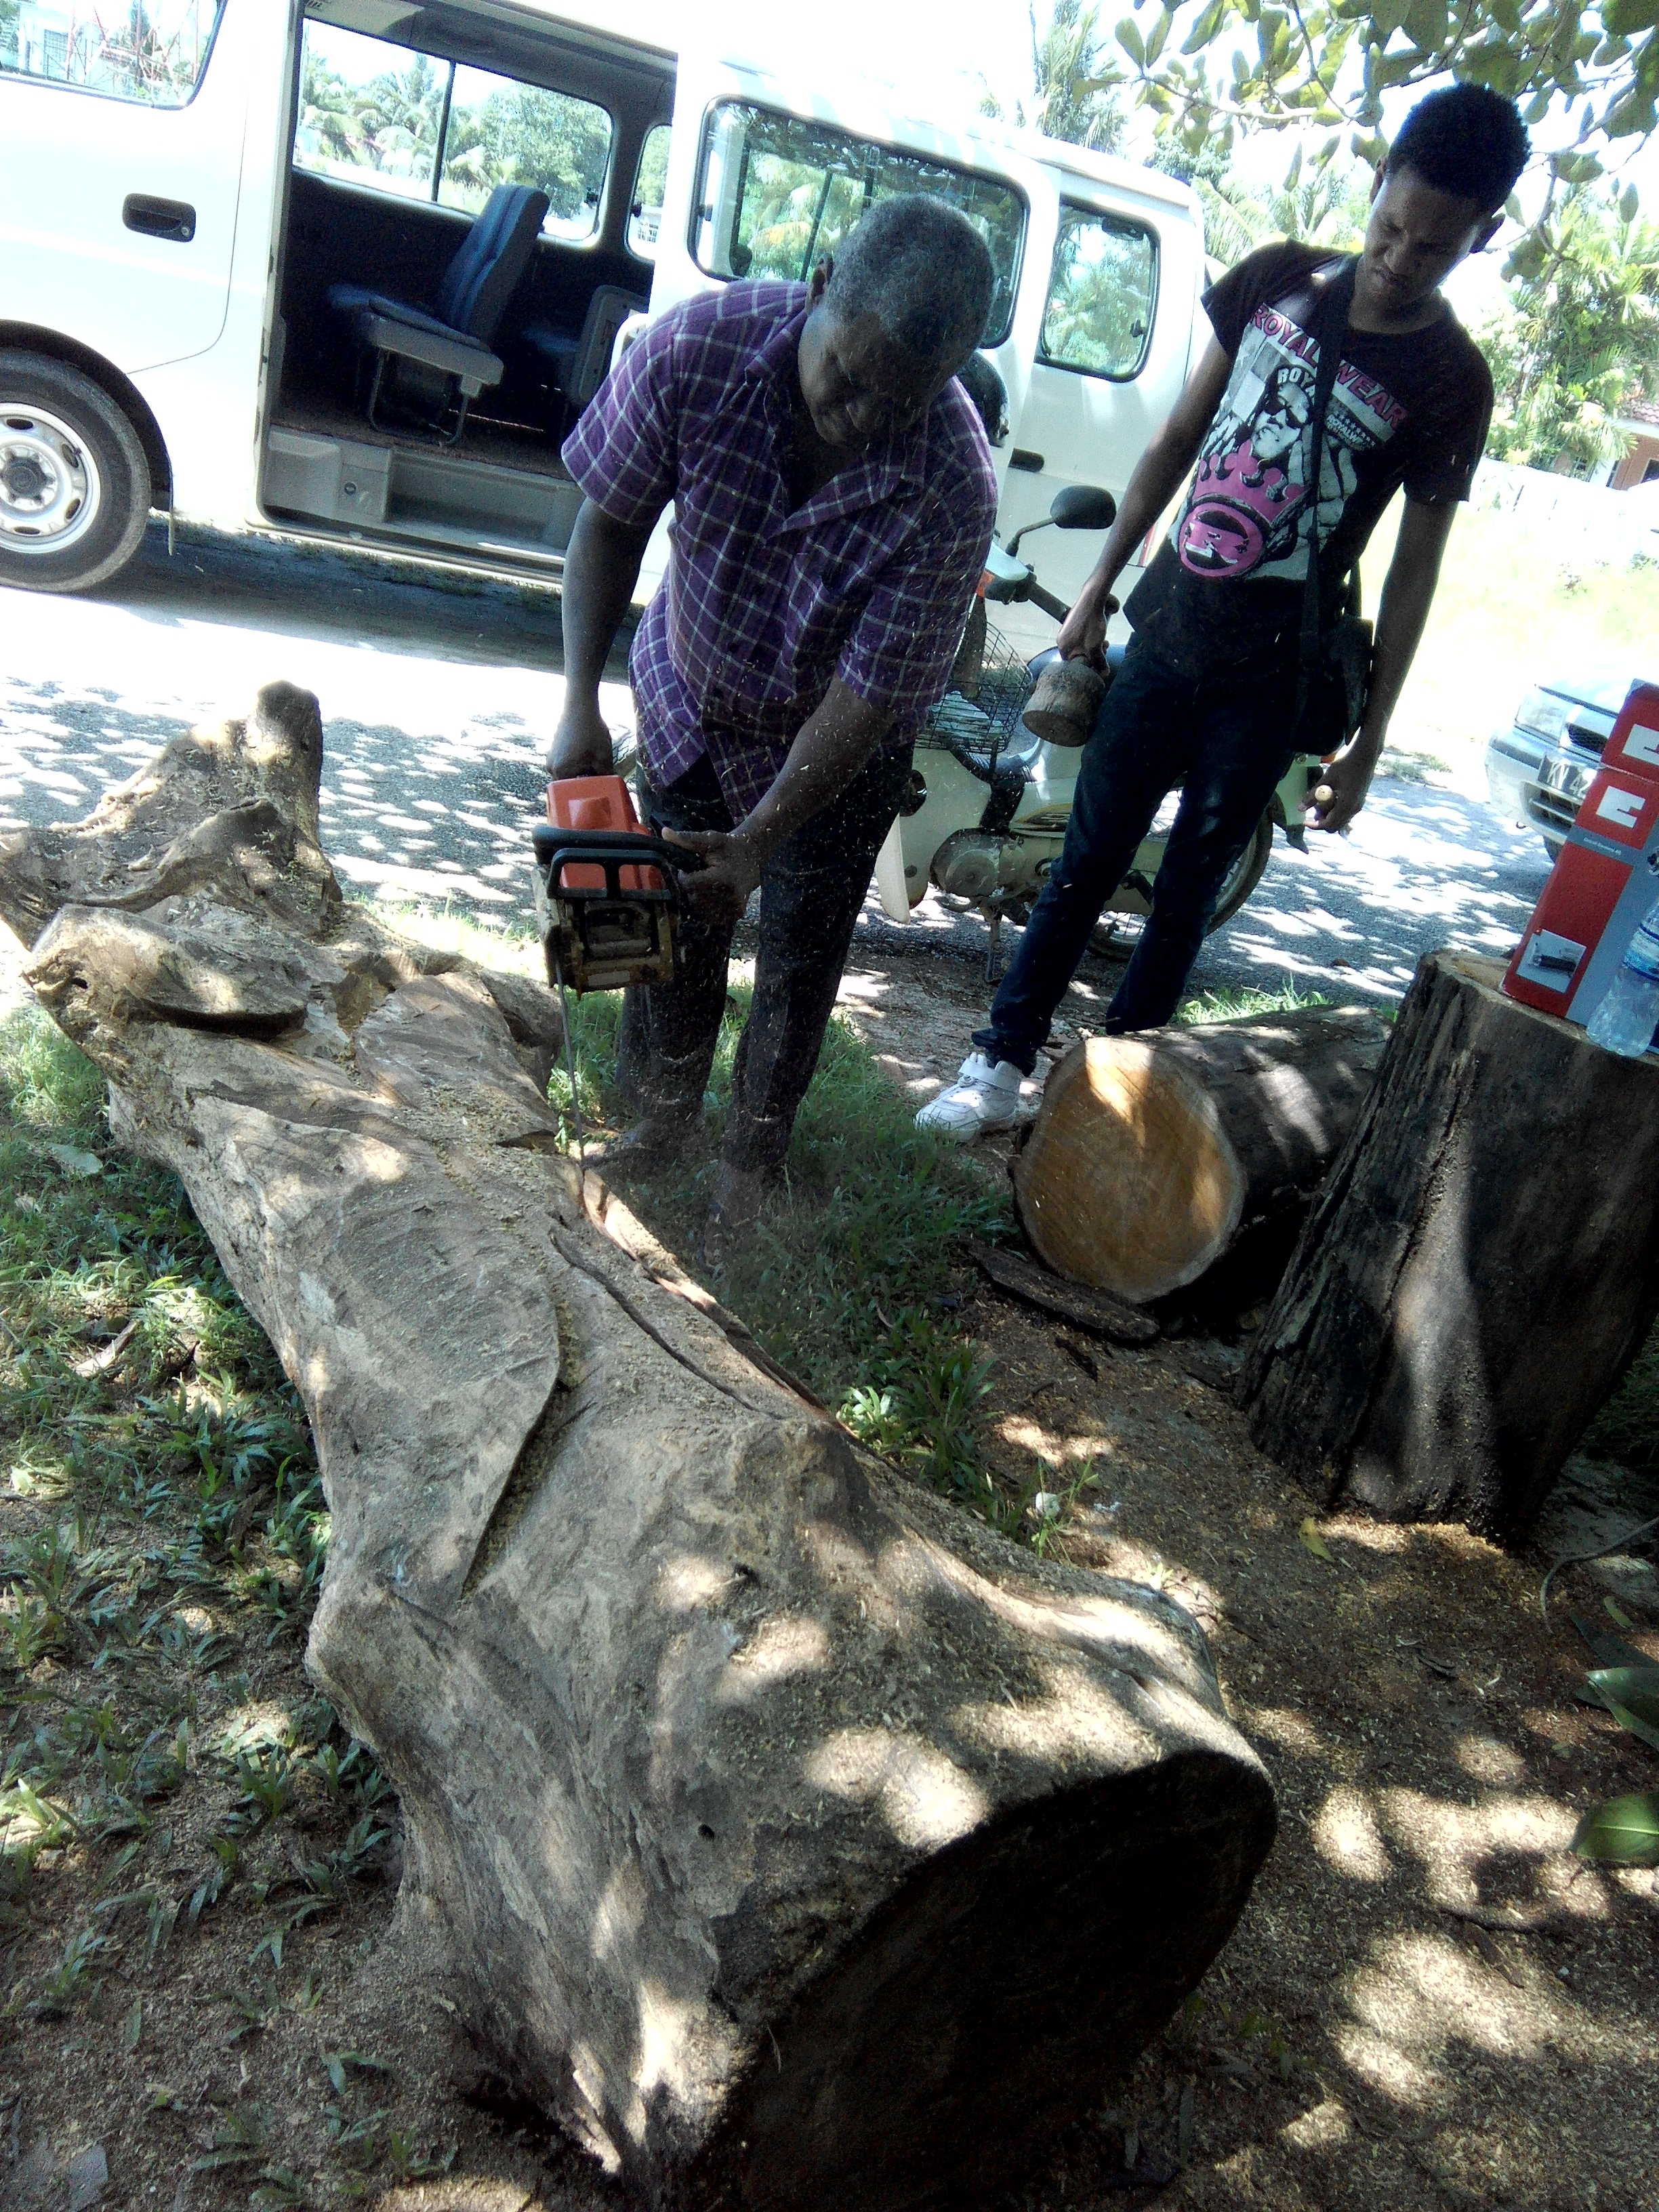 Jean Lewis Dick and his group from Mauritius continue their work on this log.